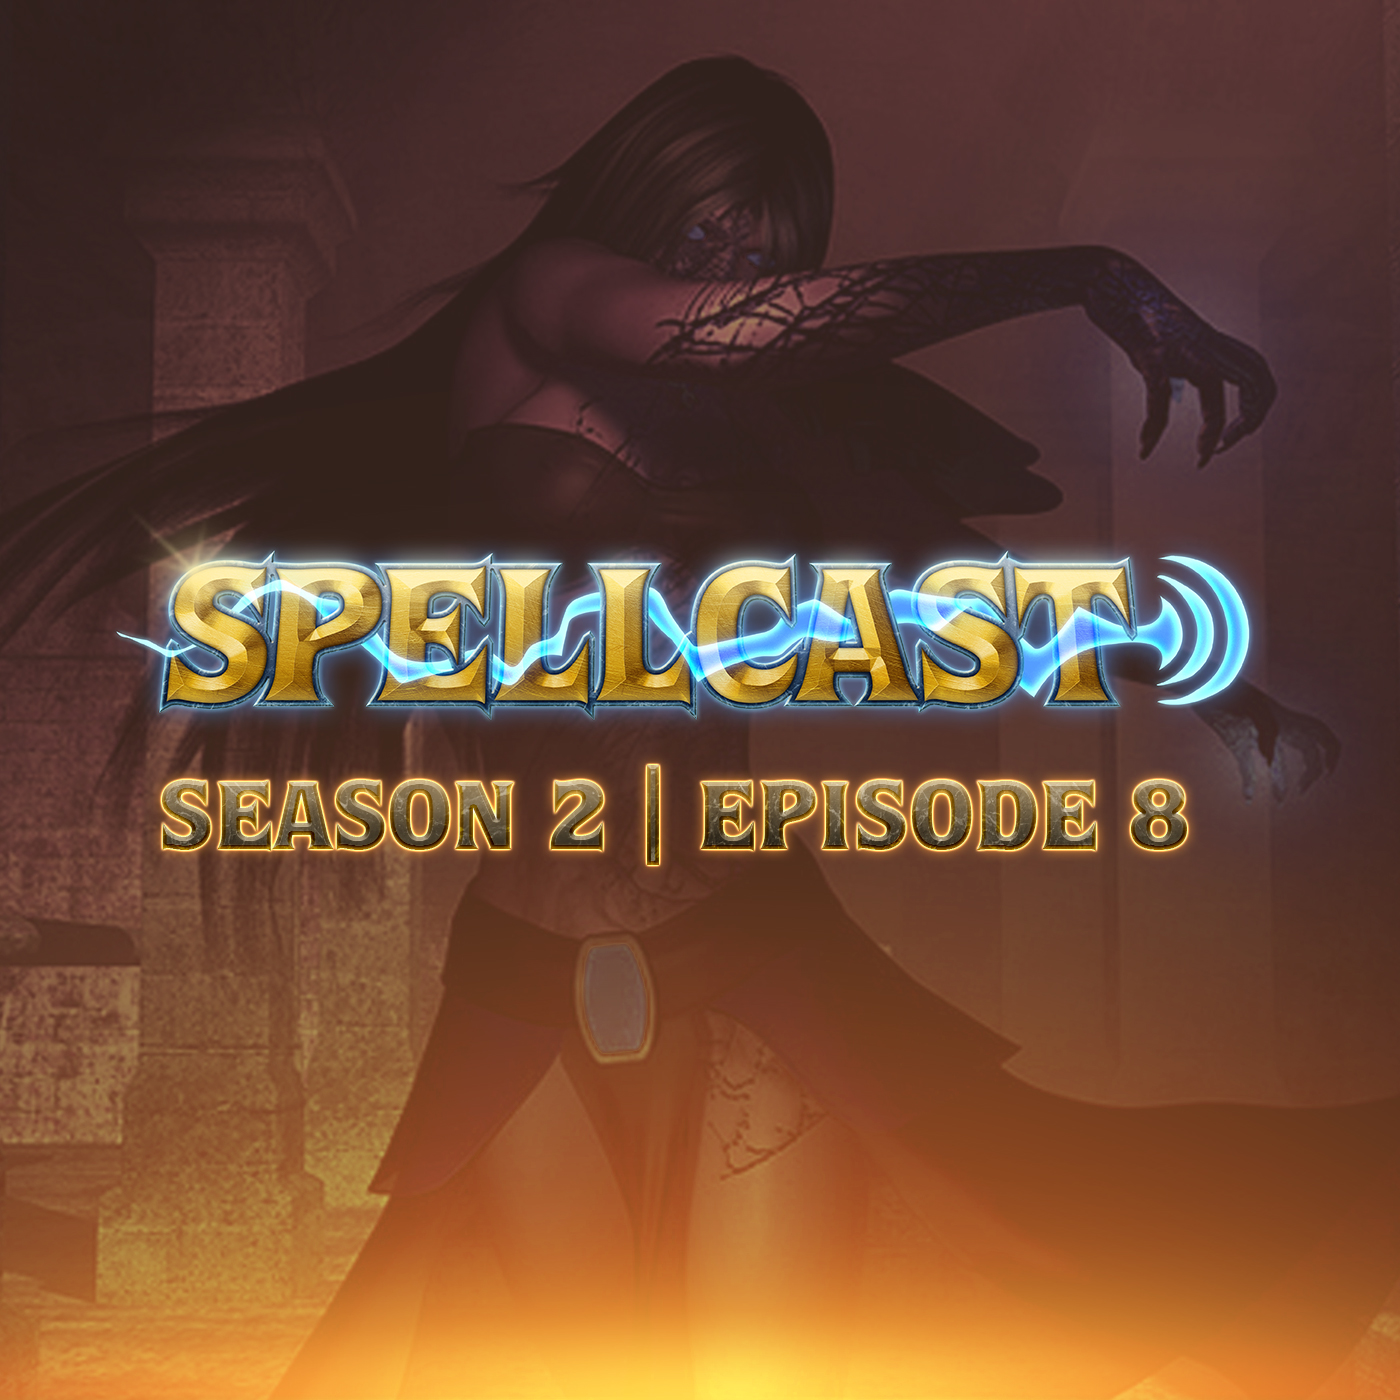 Spellcast Season 2 Episode 8